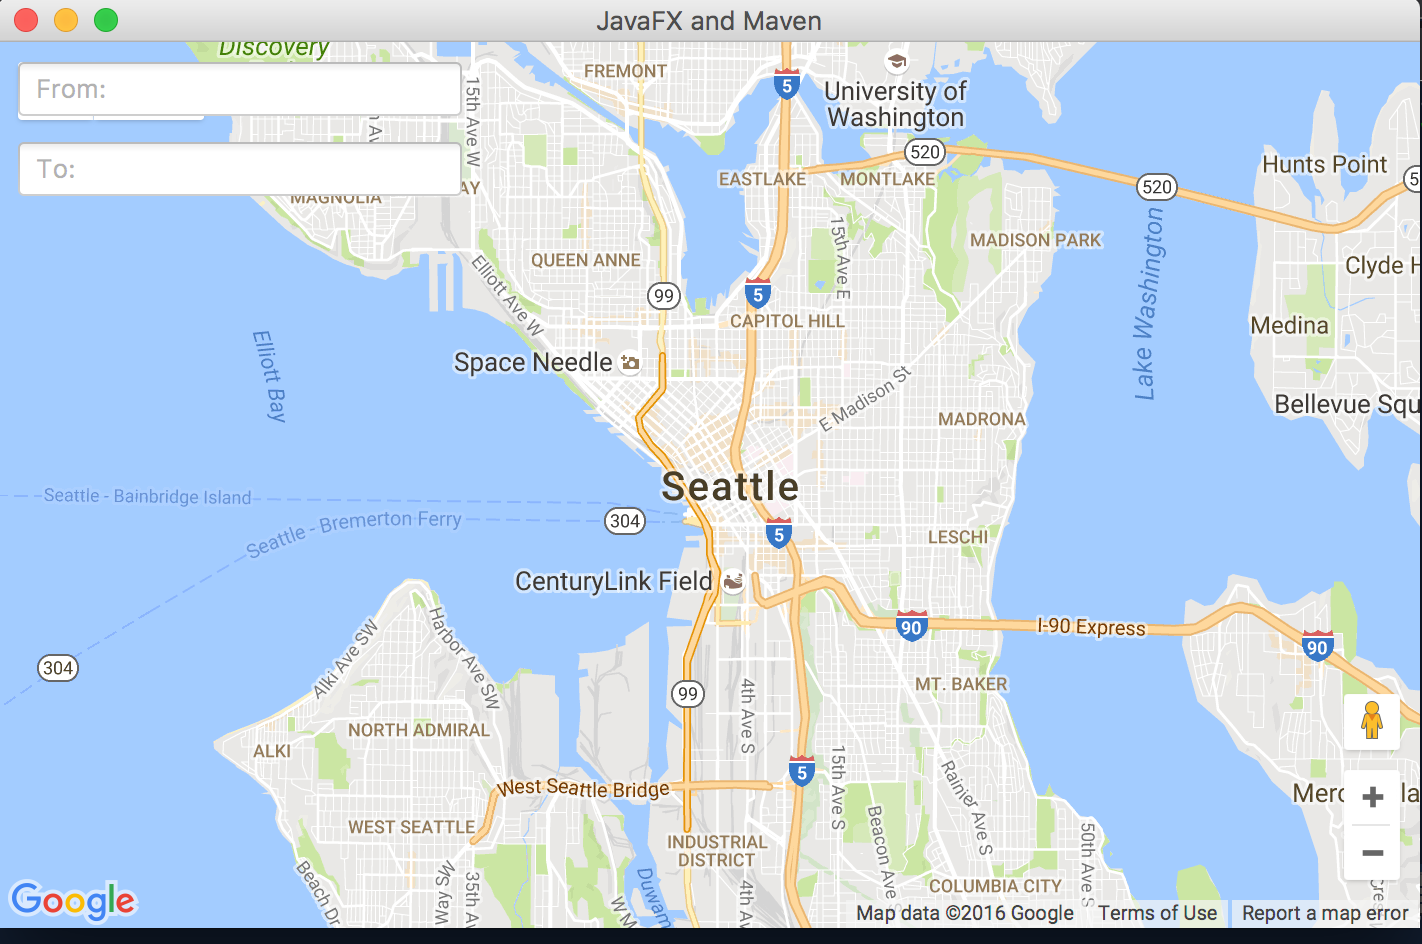 Mapping Directions with JavaFX using the GMapsFX Directions ... on maps and directions, google us time zones map, google business card, bing get directions, google earth street view, google mapquest, i need to get directions, get walking directions, funny google directions,